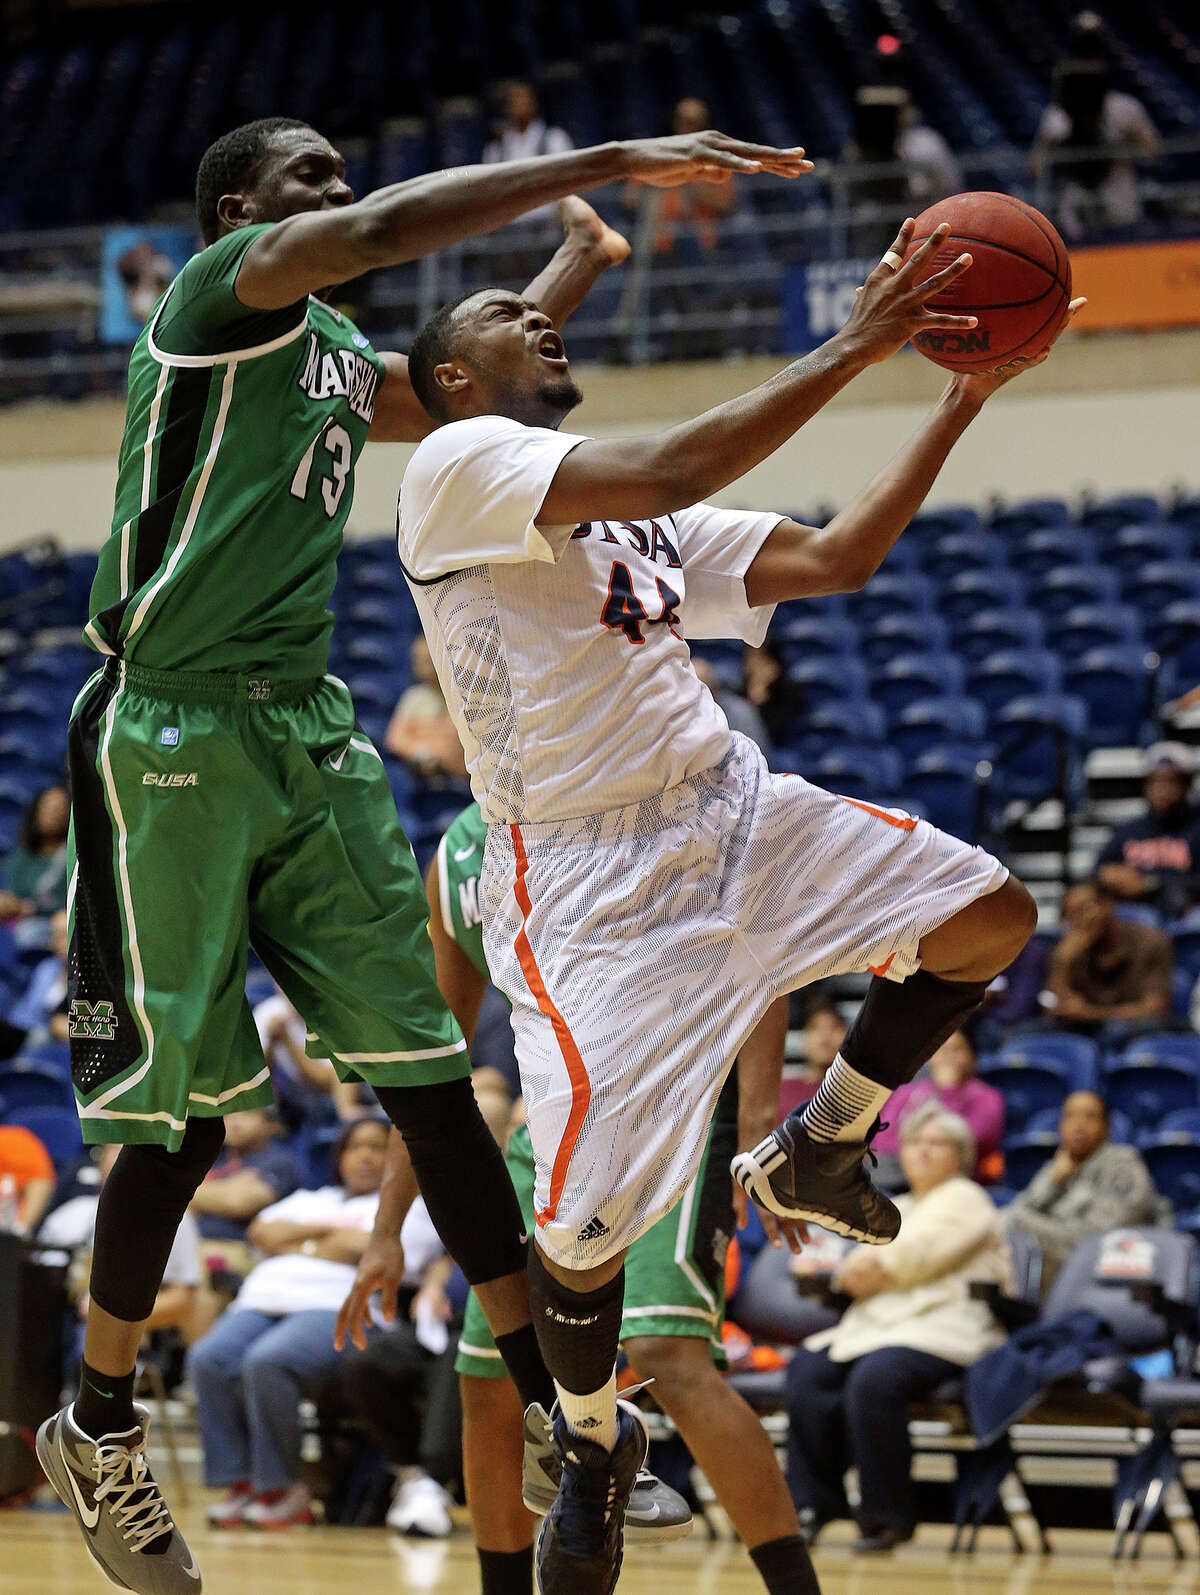 Keon Lewis beats Marshall big man Cheikh Sane to the hoop at the UTSA Convocation Center in 2014. Lewis is expected to be one of the main contributors to the Roadrunners' offense in 2014-15.